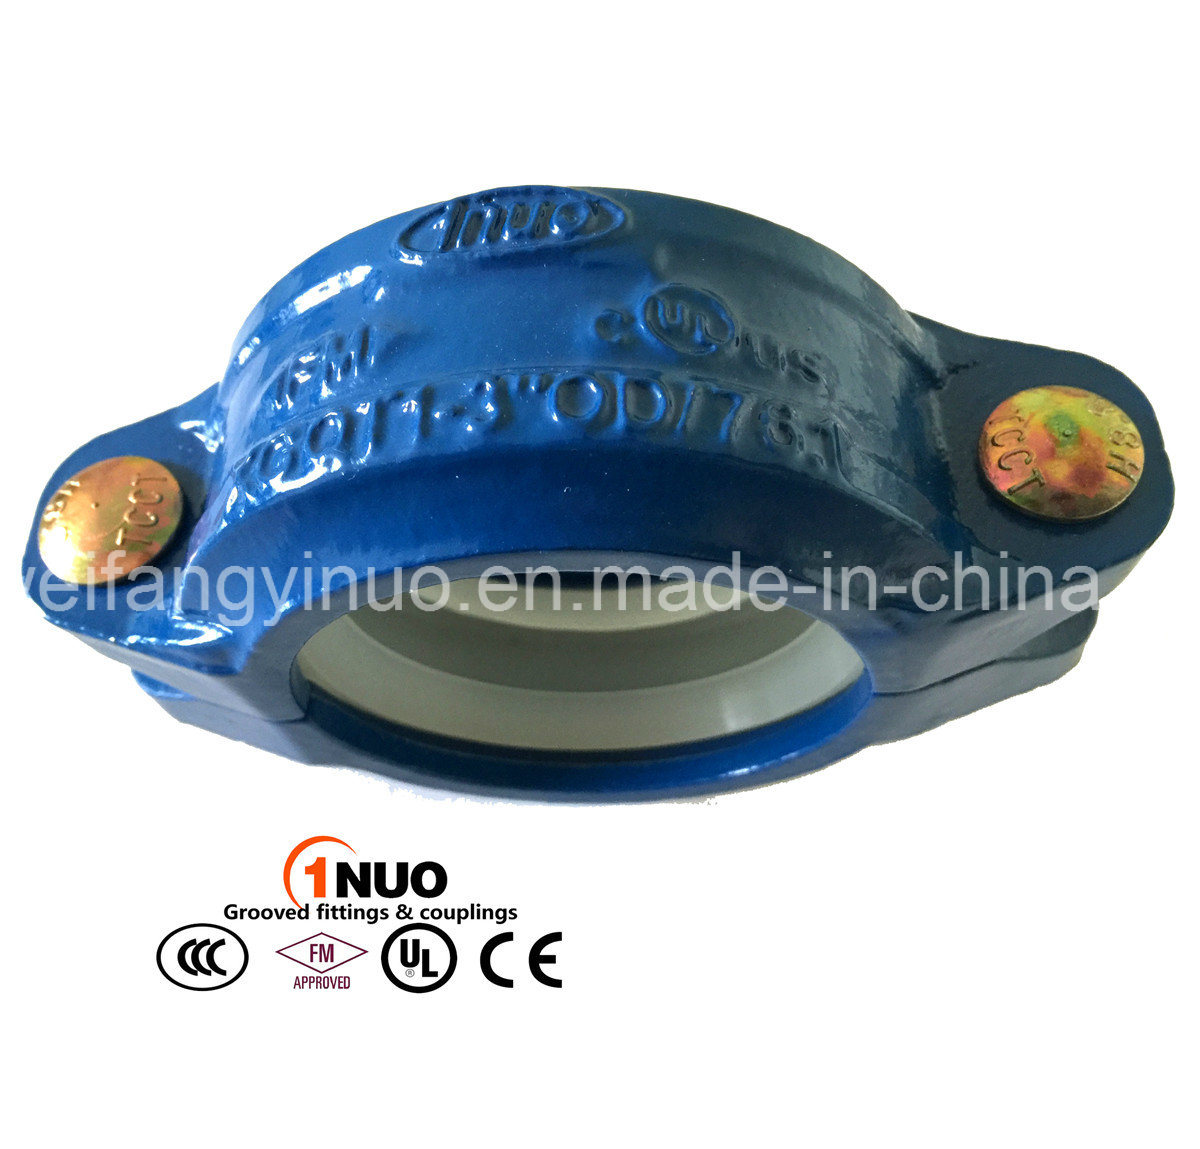 FM/UL Ductile Iron Blue Color Grooved Coupling for Water Treatment/ Irrigation